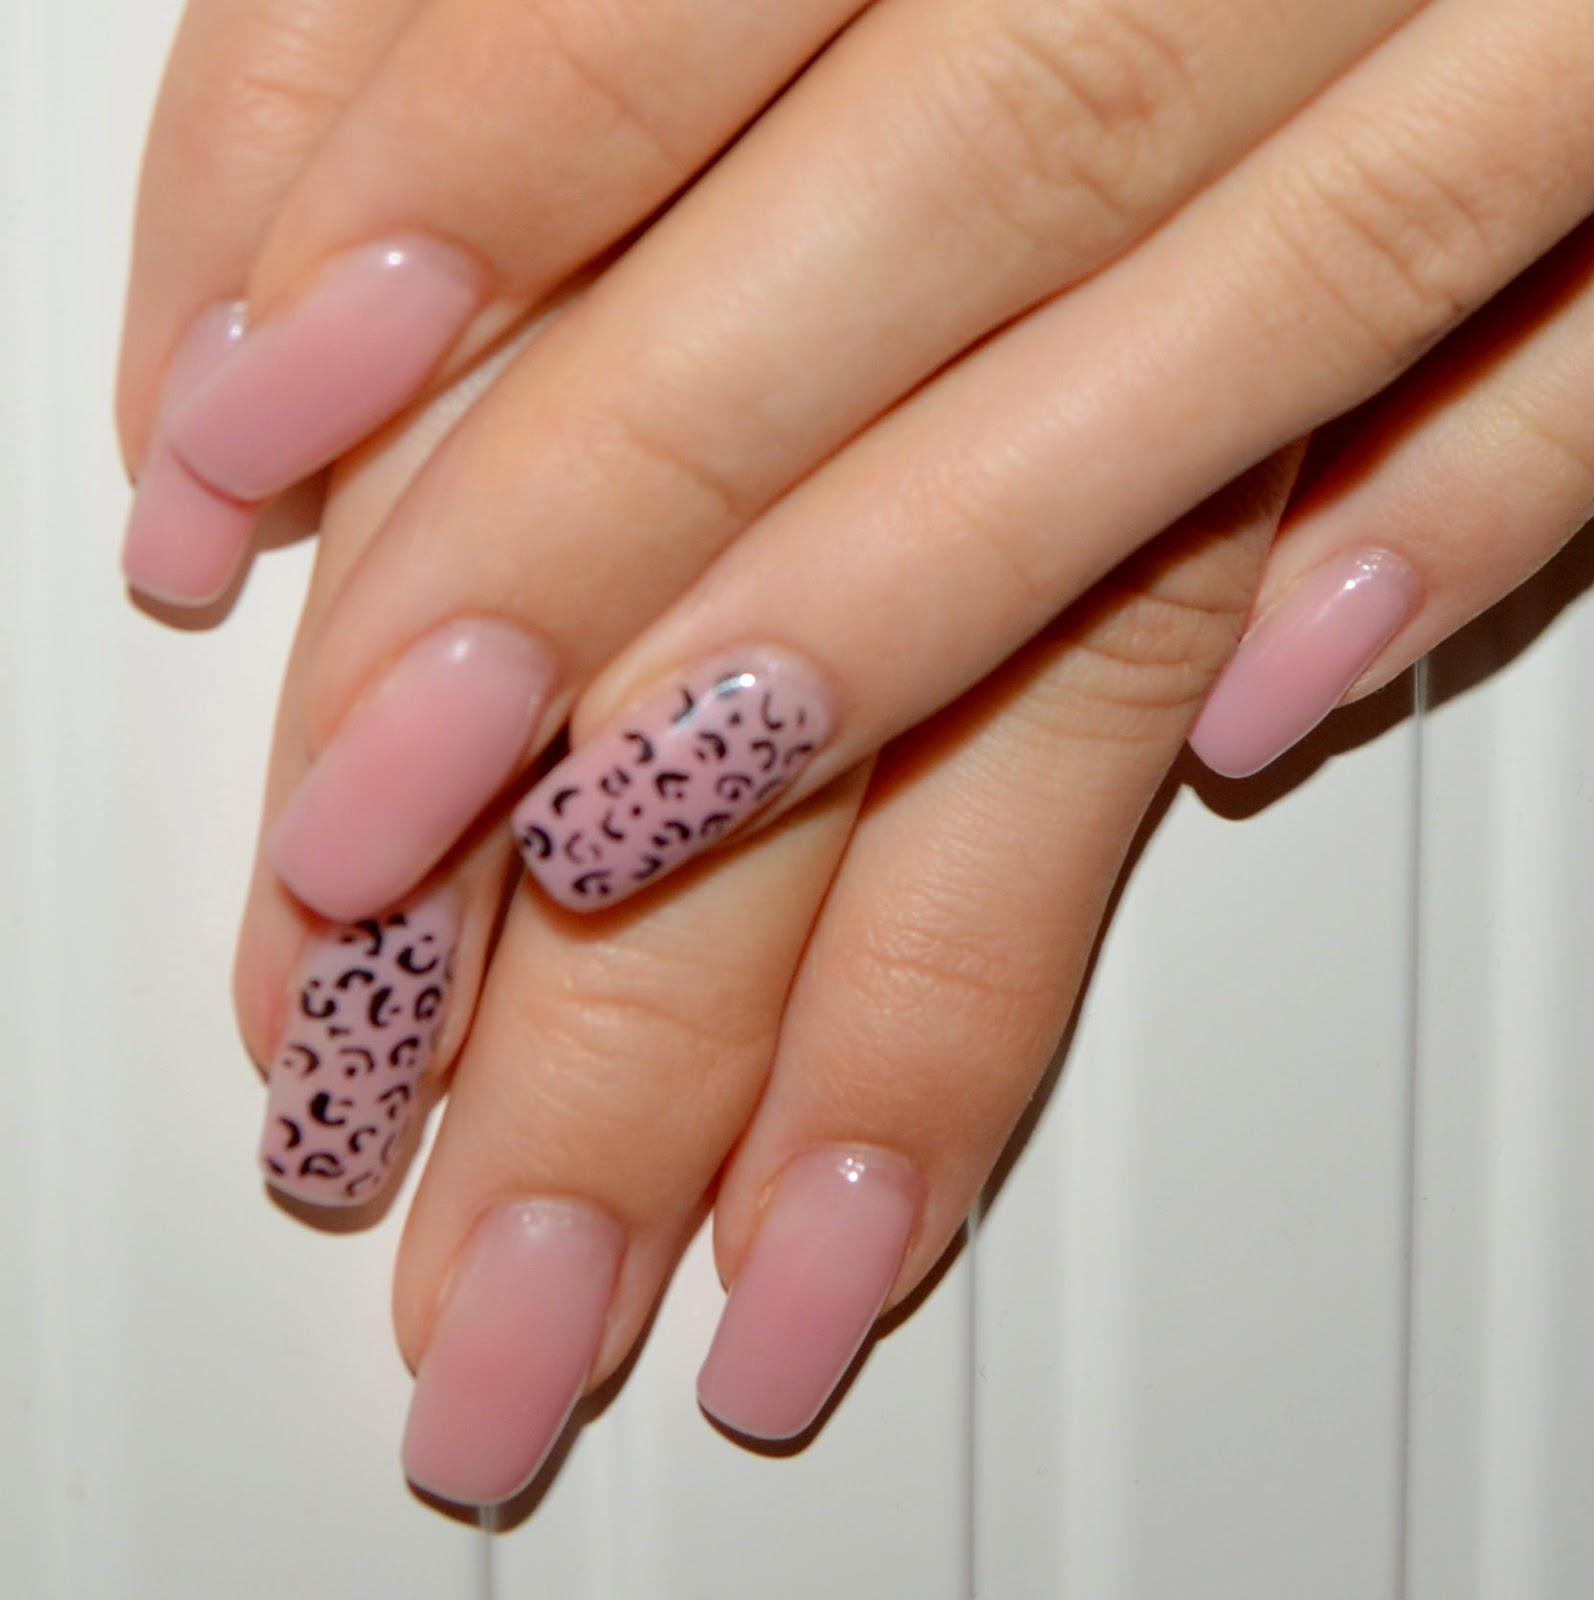 schlichtes nageldesign bilder - Naildesign Galerie Nagelstudio Heinsberg Nail Point